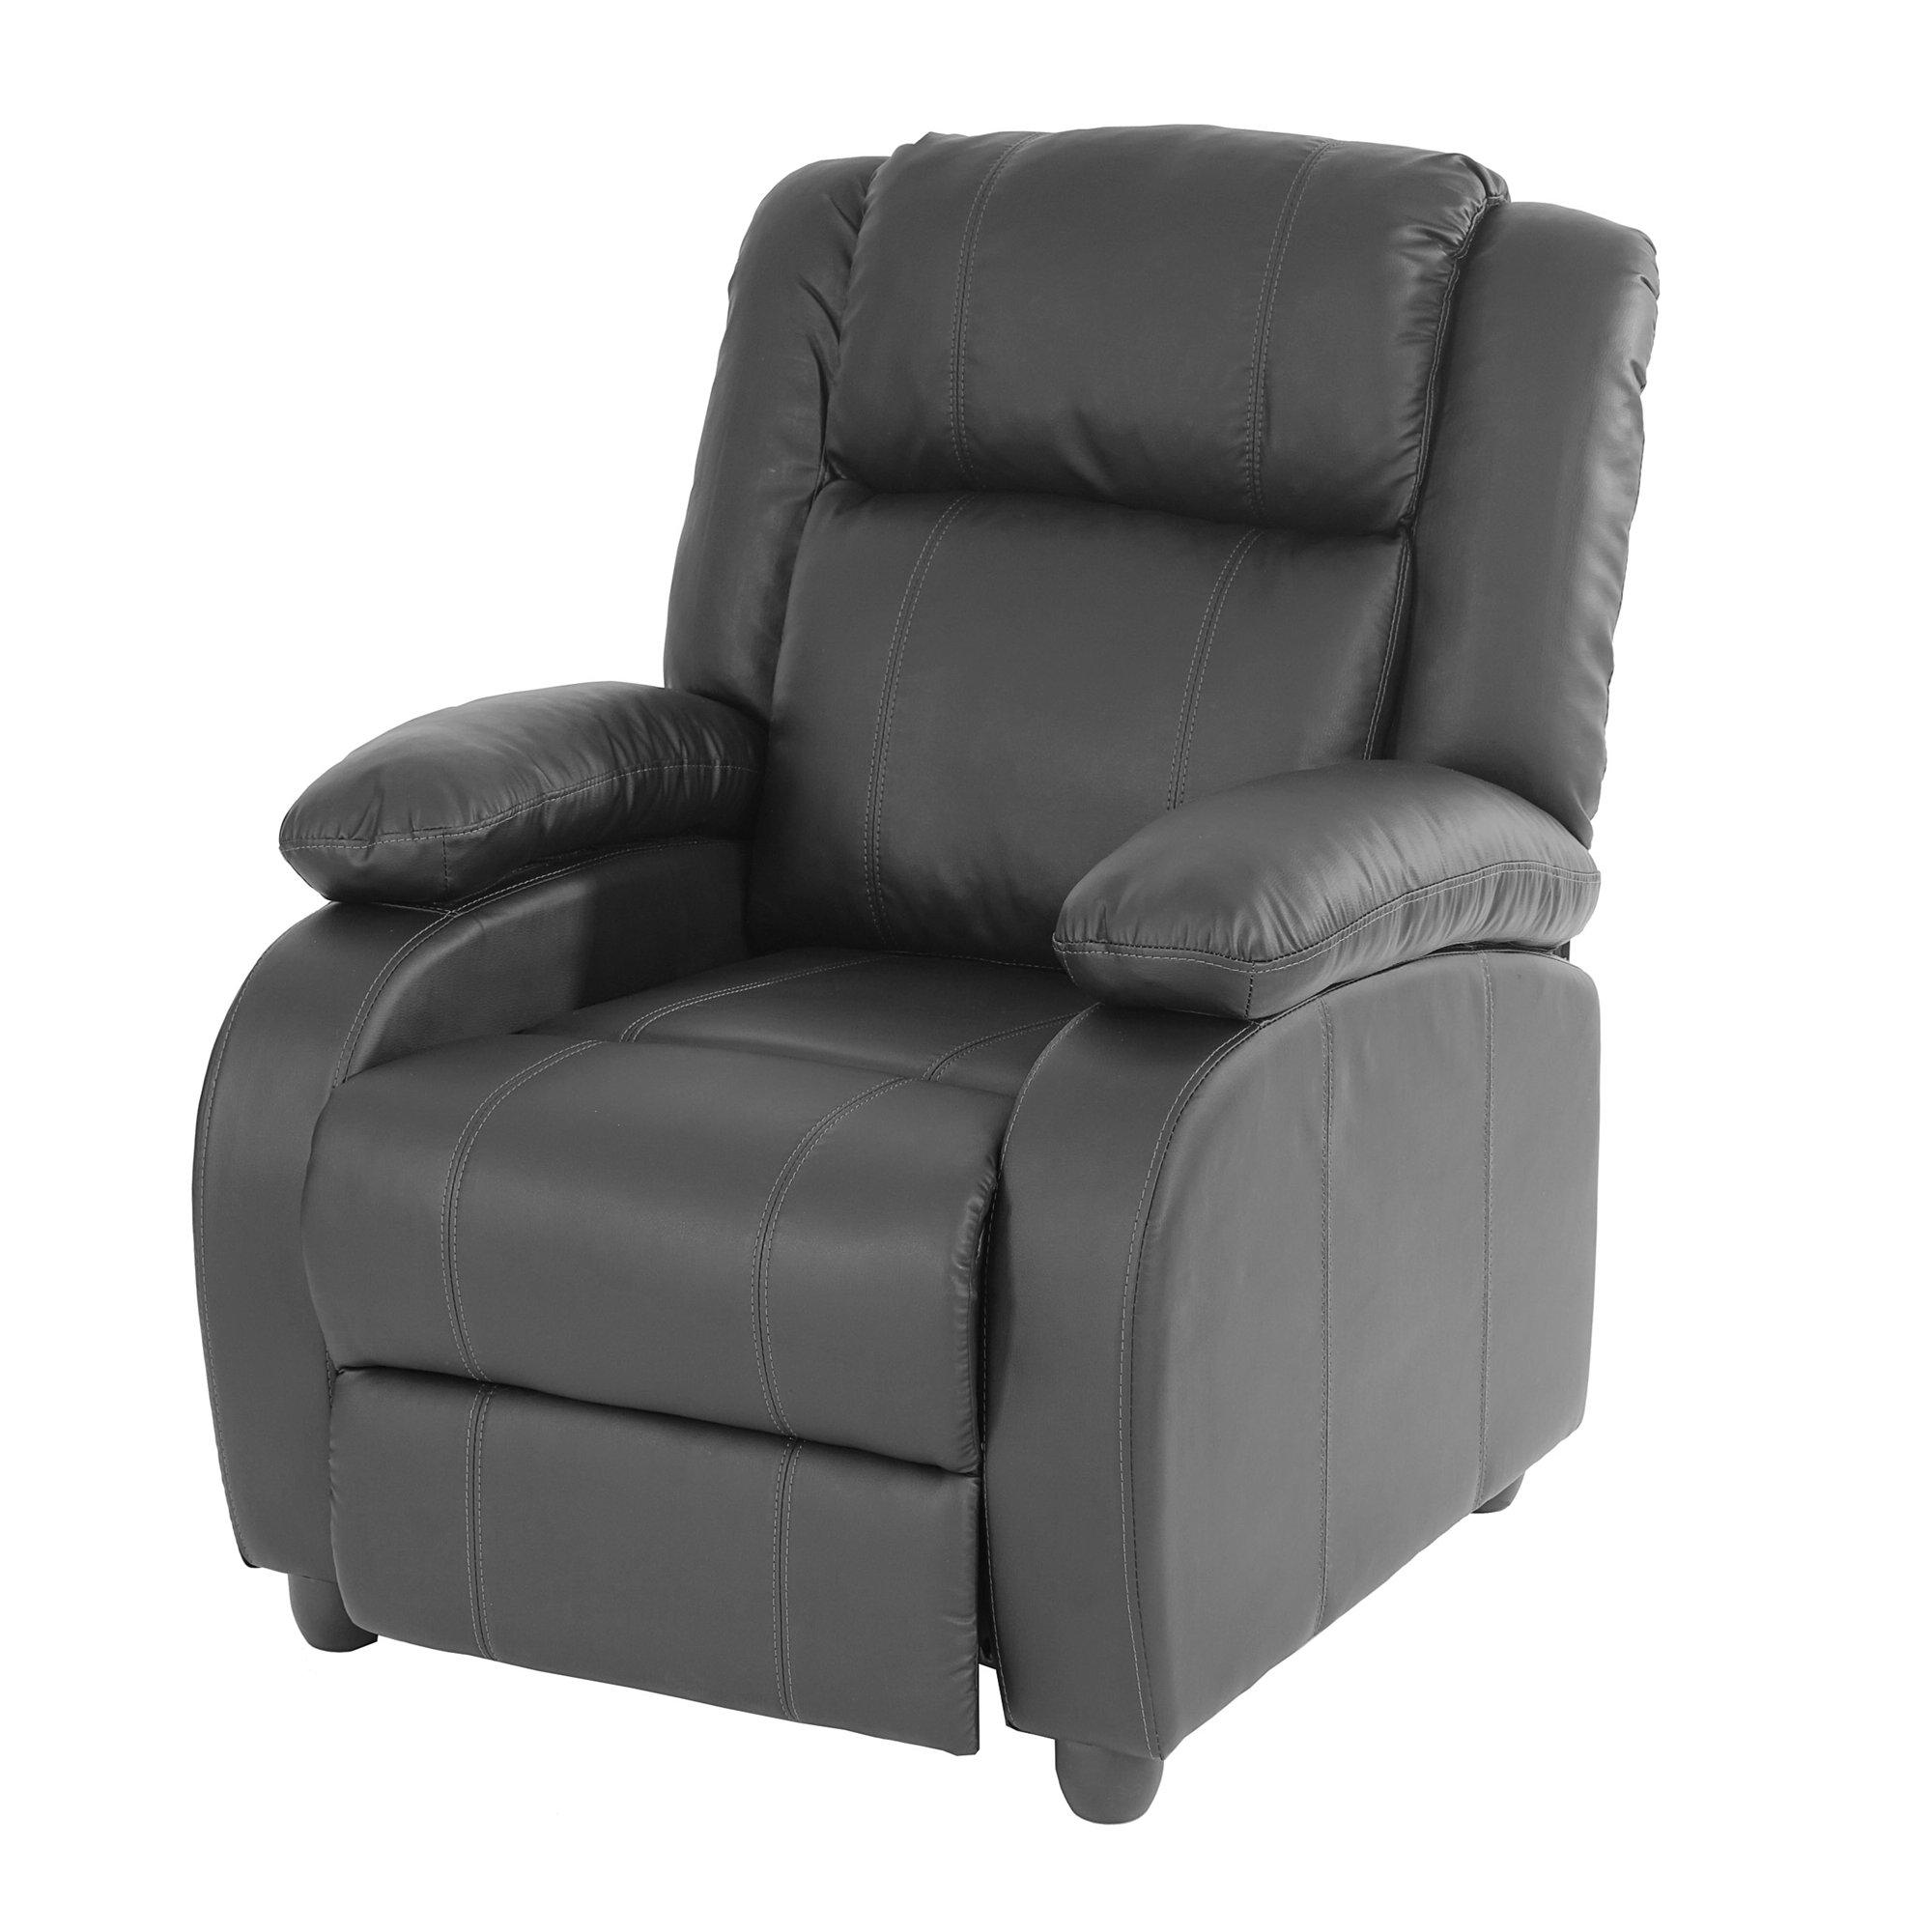 Sill n relax reclinable lincon en color negro sillon relax reclinable lincon color negro - Sillon individual relax ...